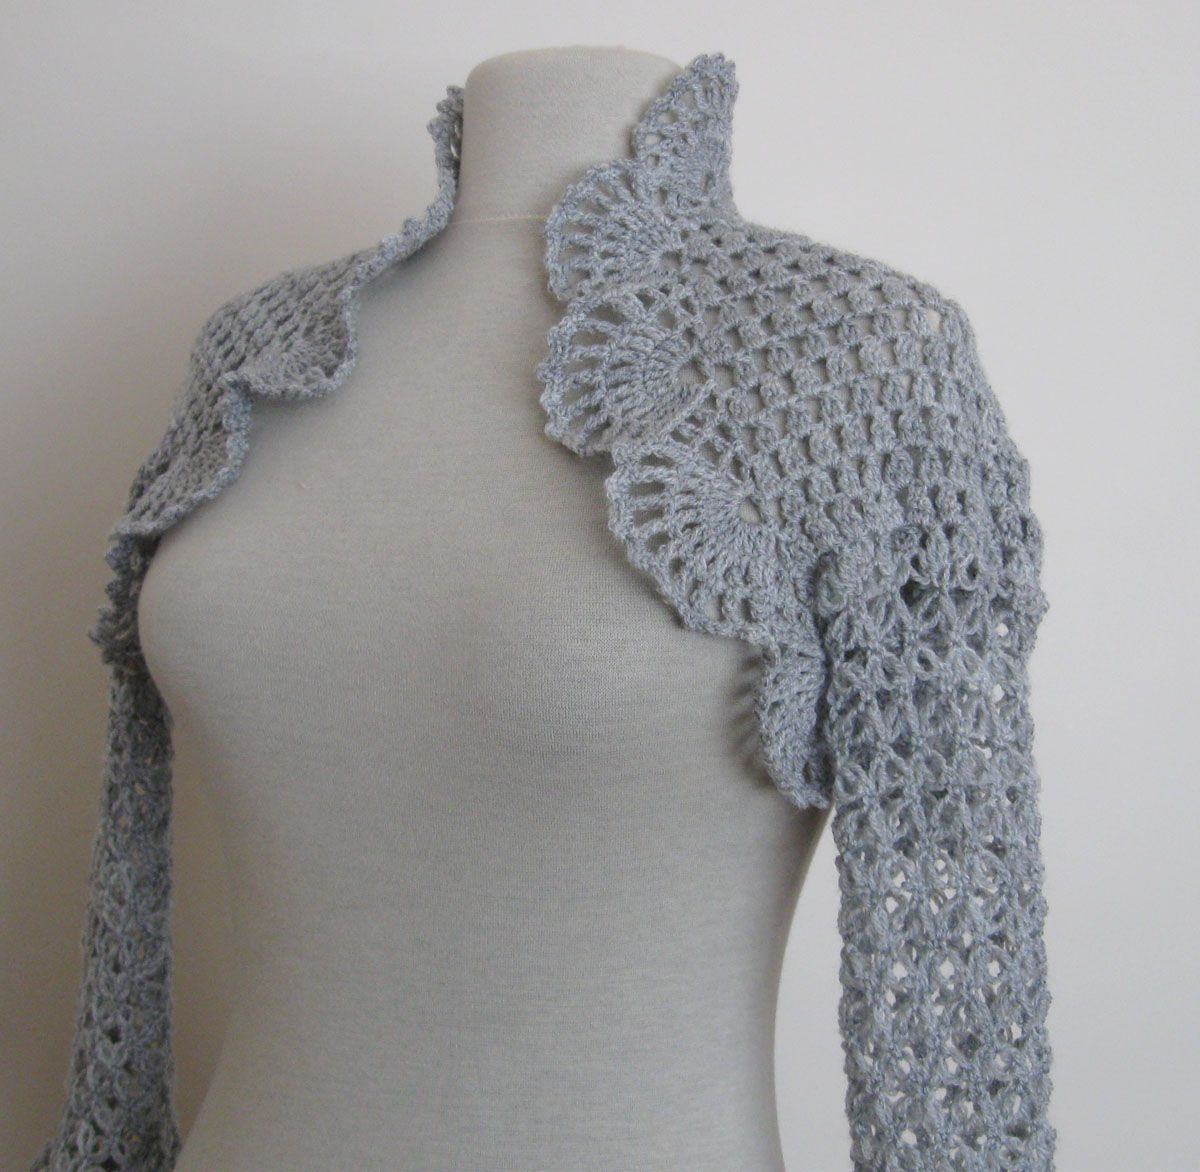 Crochet Bolero Pattern Magnificent Design Inspiration